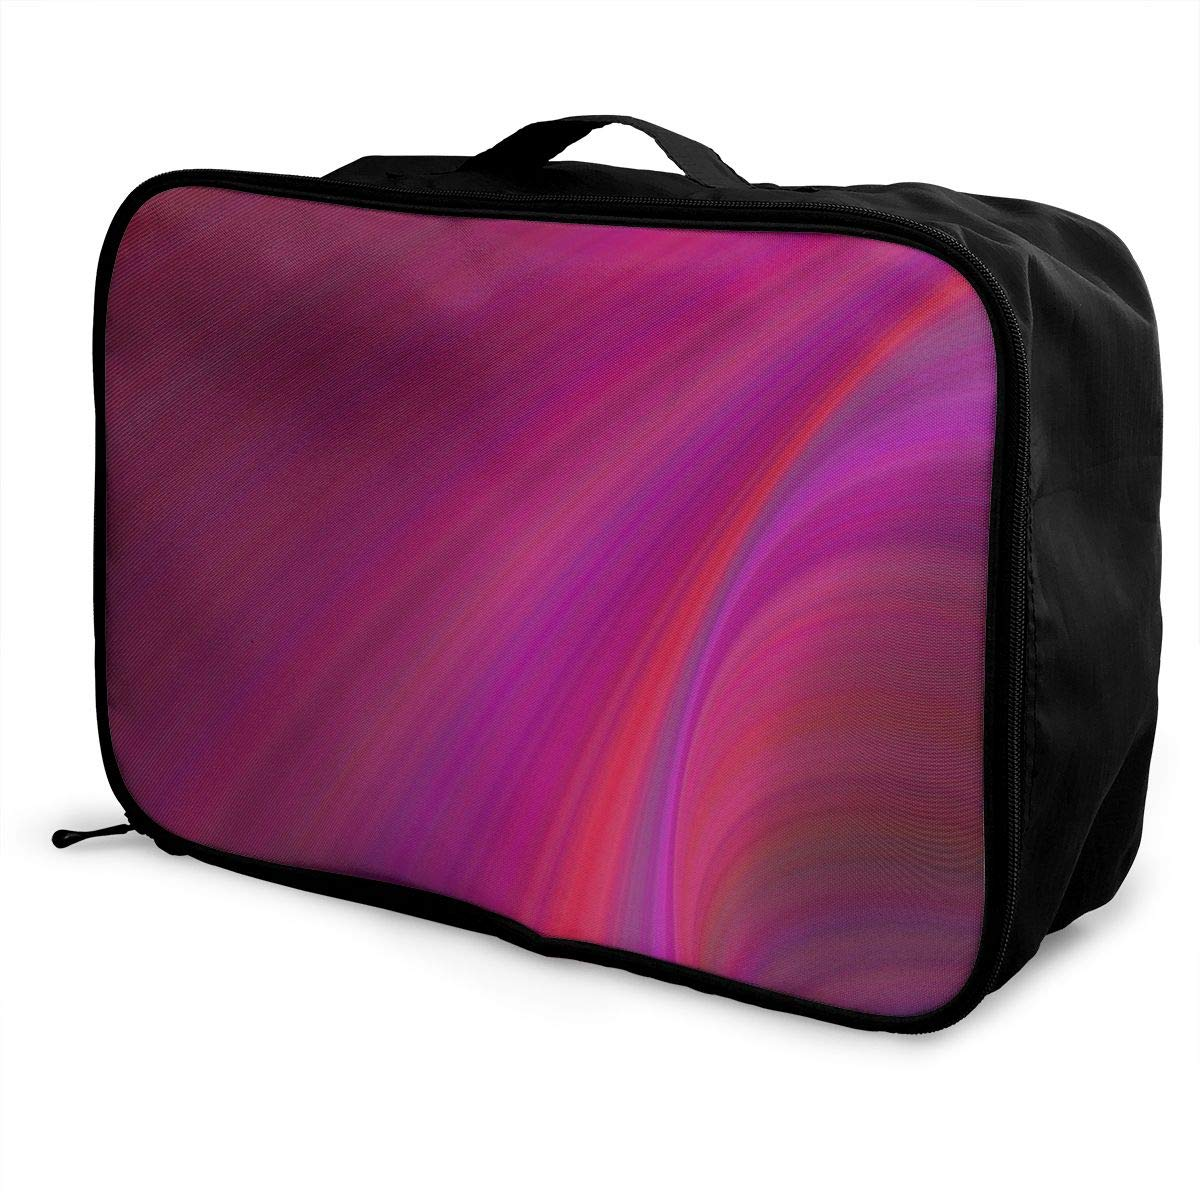 Ellipse Abstract Design Shape Travel Lightweight Waterproof Foldable Storage Carry Luggage Large Capacity Portable Luggage Bag Duffel Bag